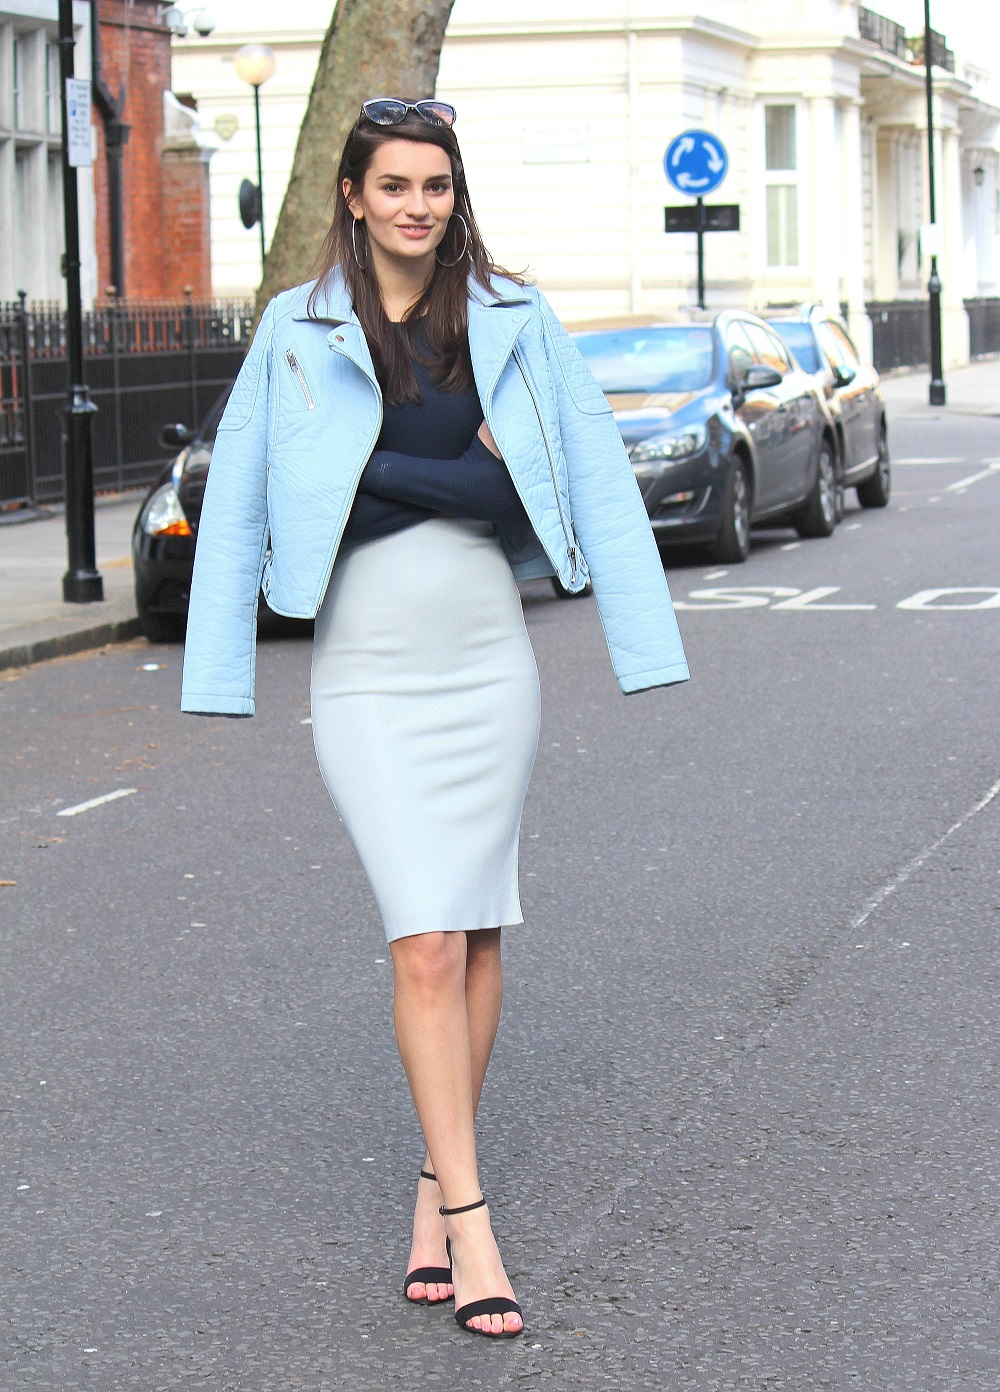 peexo fashon blogger wearing midi dress and crop top and leather jacket in pastel blue for spring